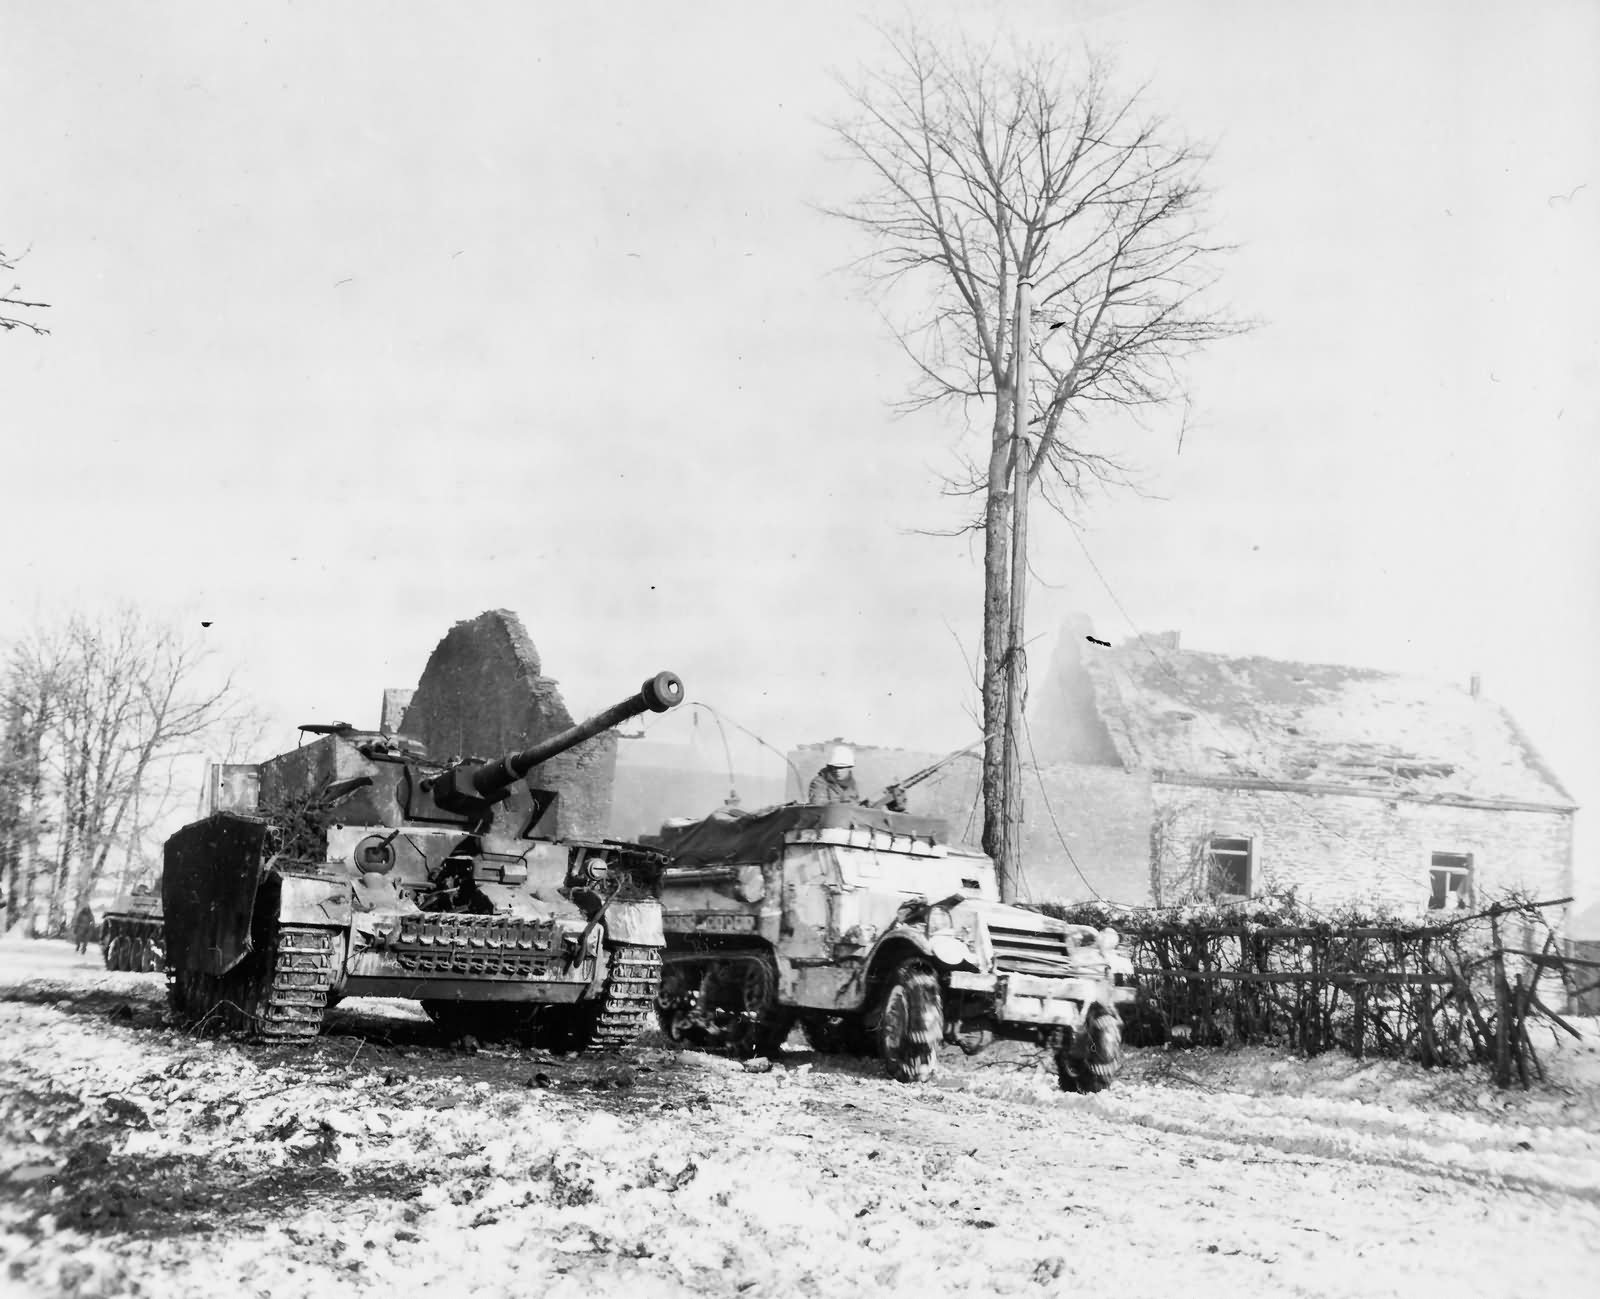 35th Infantry Division Halftrack and Panzer IV Foy Belgium Bulge 1945